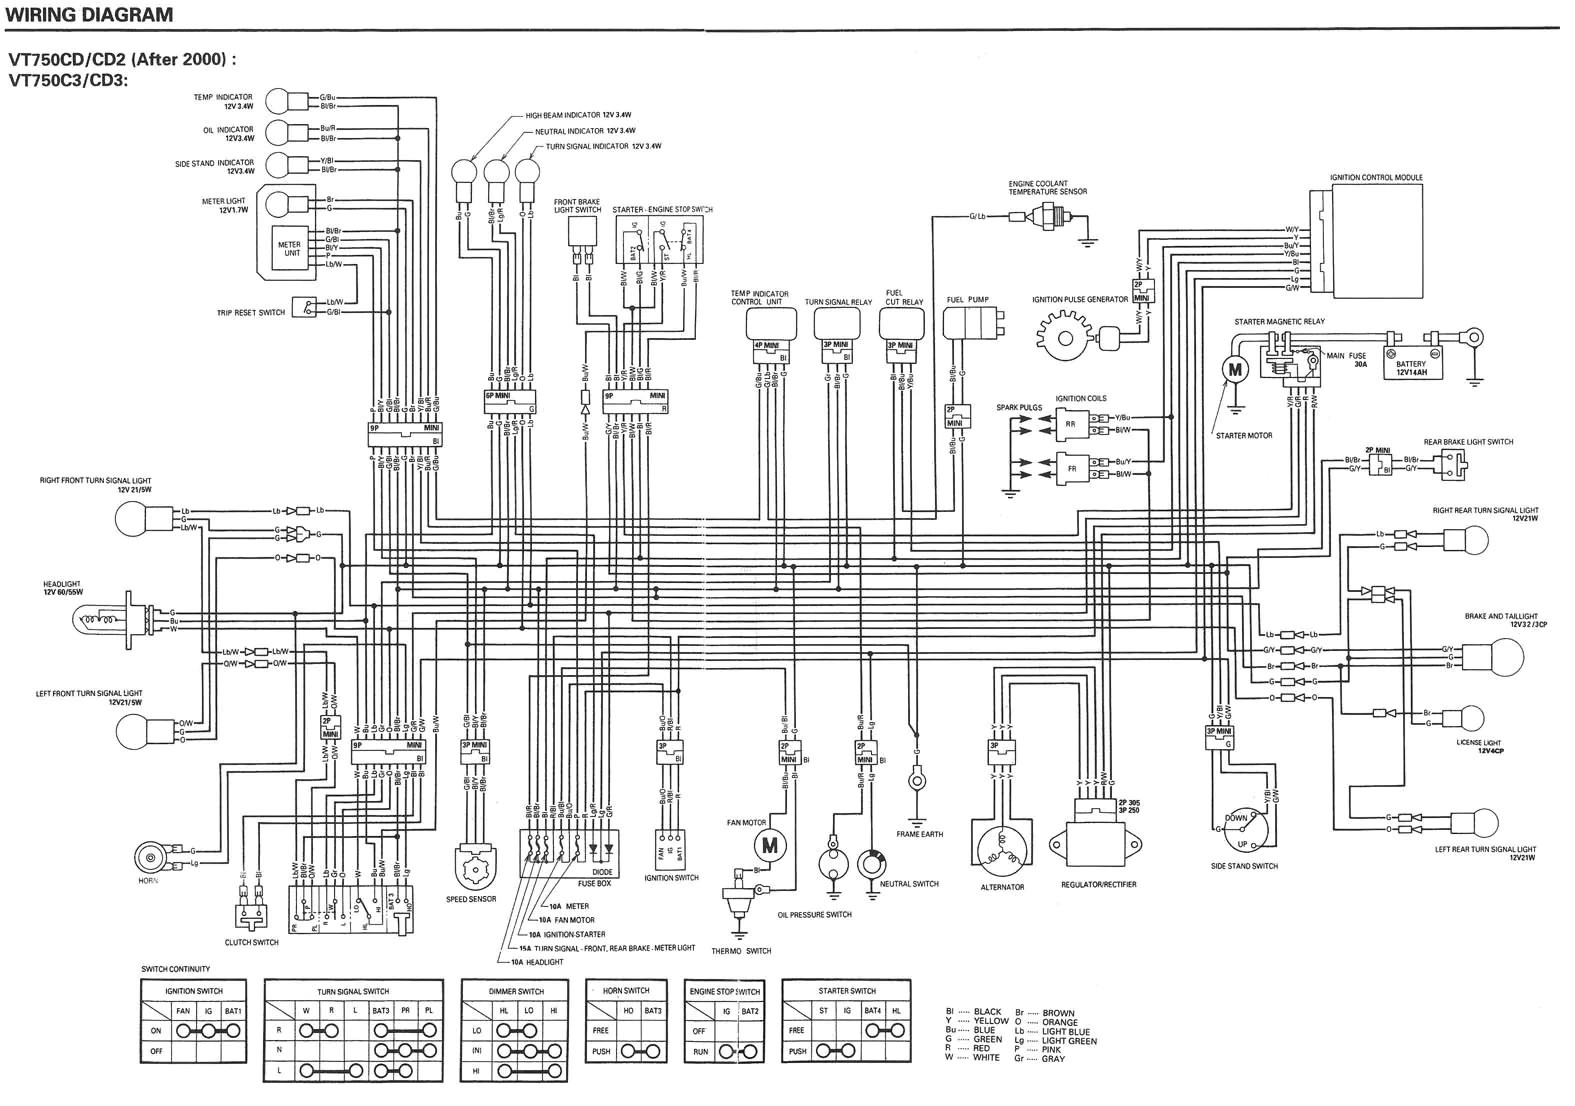 medium resolution of honda shadow wiring diagram detailed schematics diagram rh technograffito com arctic cat spirit 340 wiring diagram